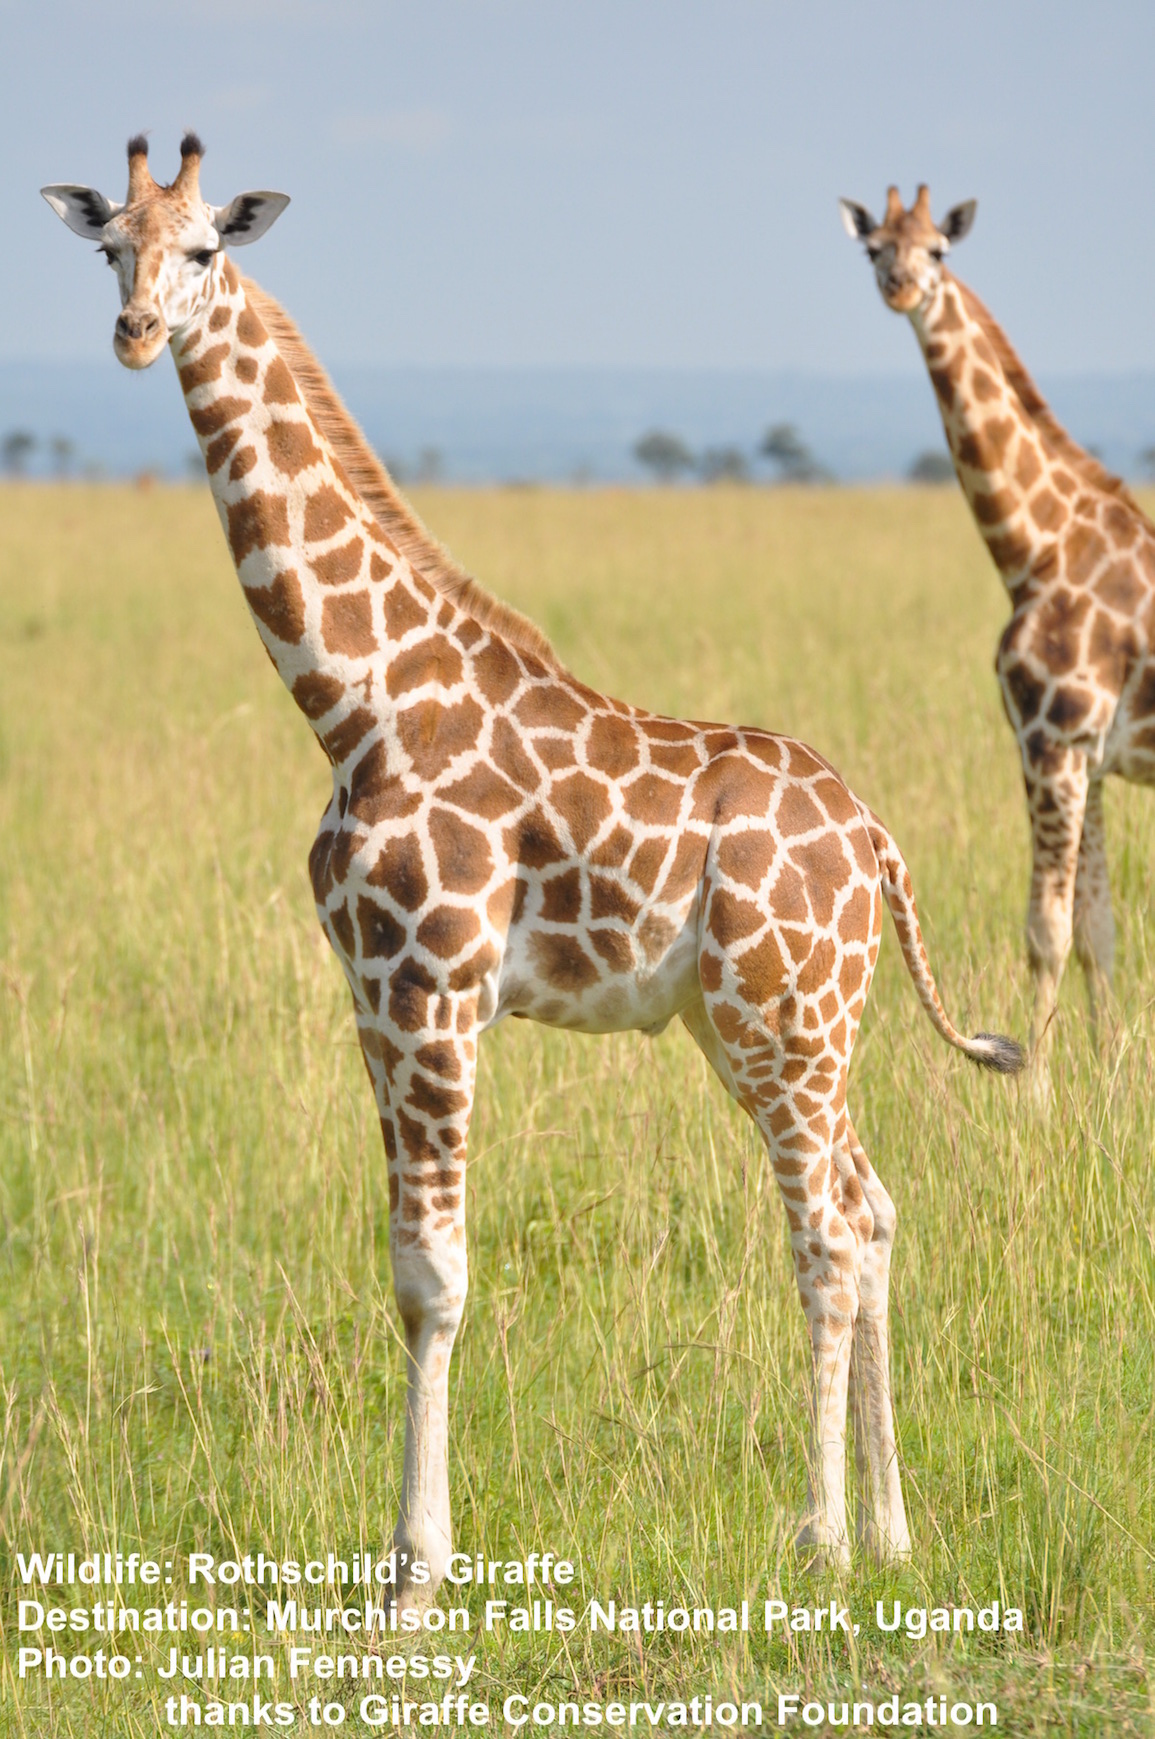 Uganda's much storied Murchison Falls National Park is home to WHAT WAS PREVIOUSLY THOUGHT TO BE the Rothchild's giraffe, NOW THE NORTHERN GIRAFFE SPECIES. Image Julian Fennesy thanks to Giraffe Conservation Foundation.